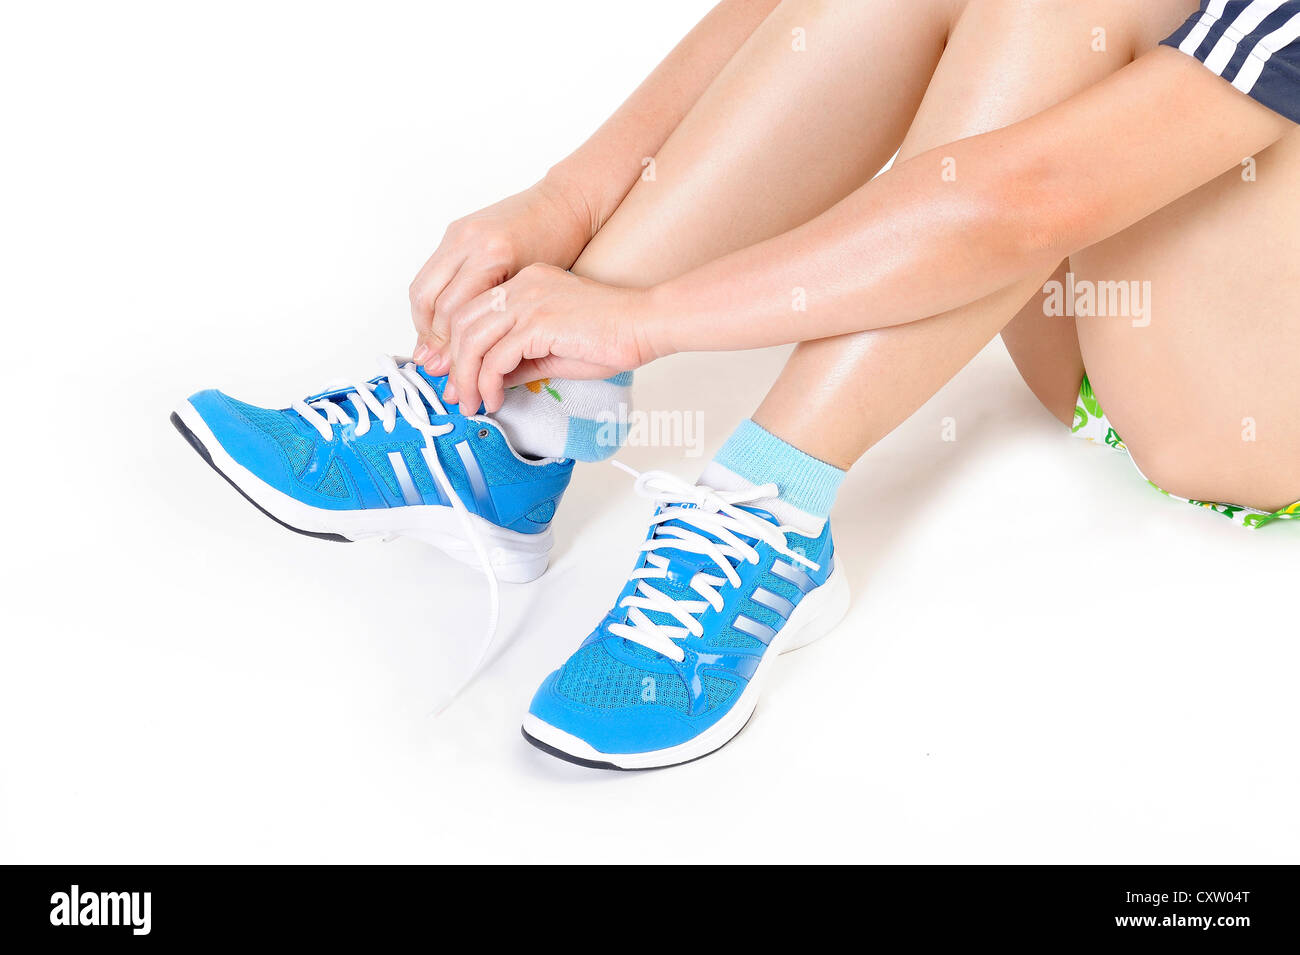 Athlete girl trying running shoes - Stock Image